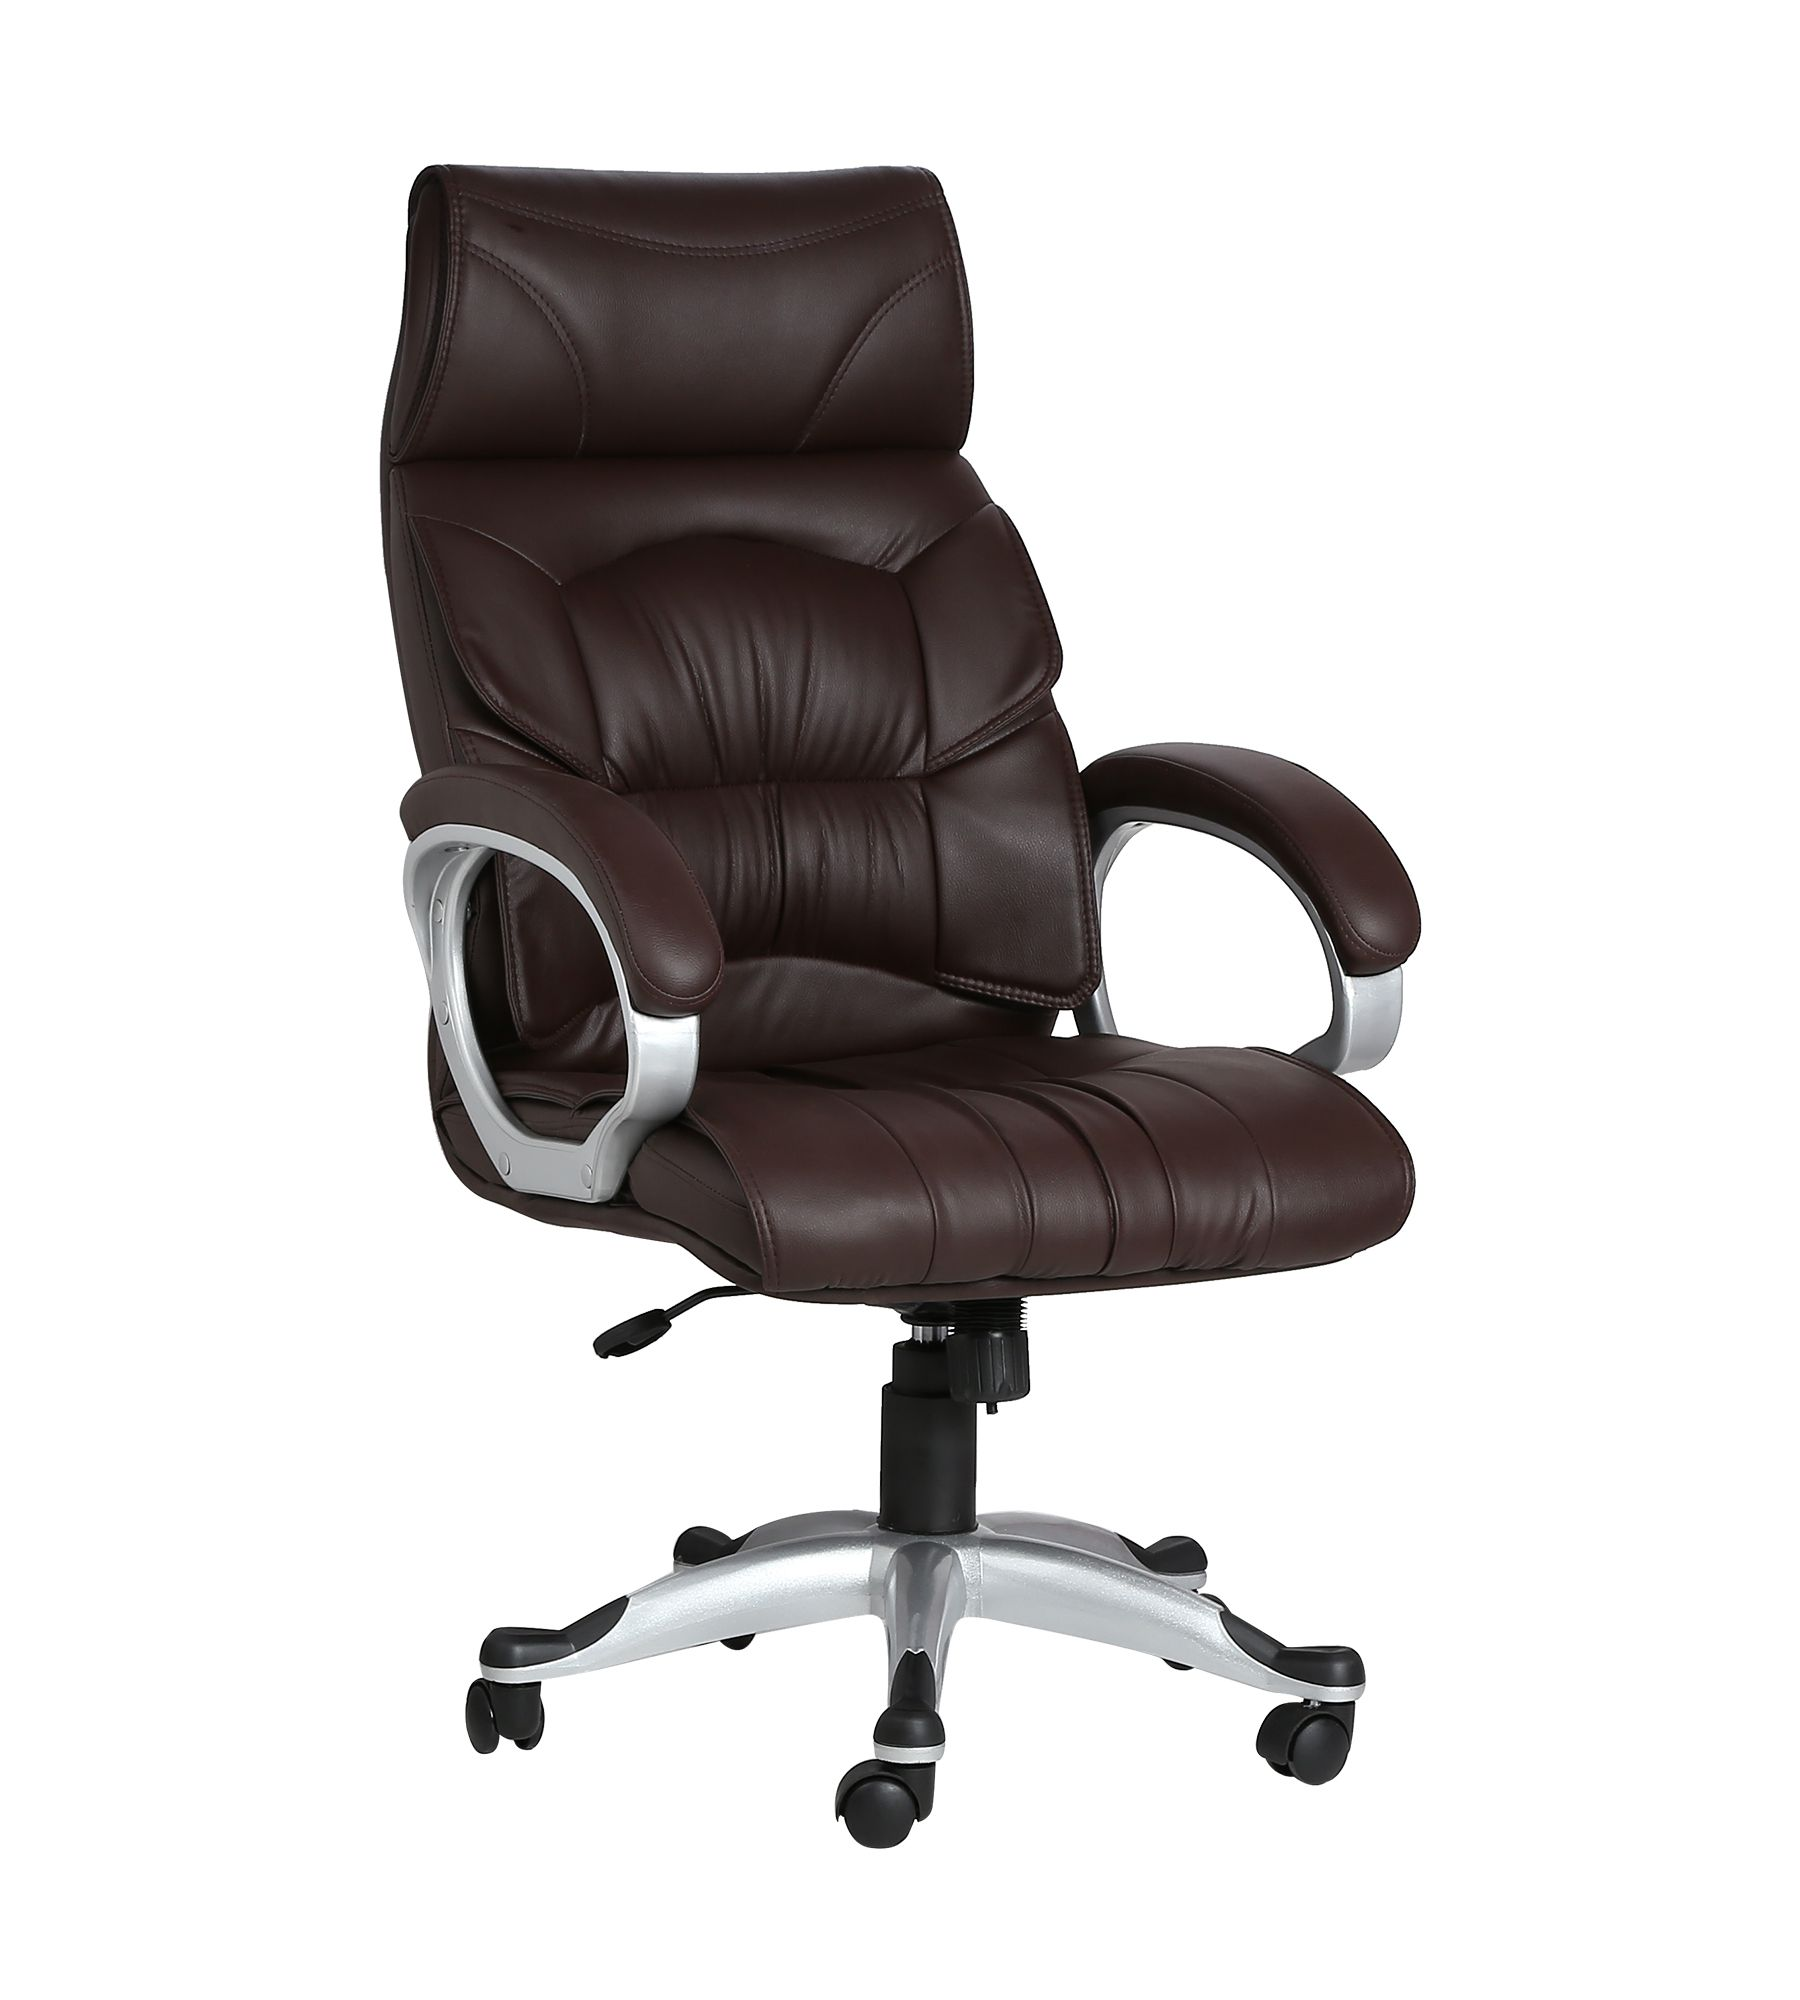 buy best chairs online doblepiel executive high back brown chair buy doblepiel 11803 | Doblepiel Executive High Back Brown SDL824784437 1 a260b